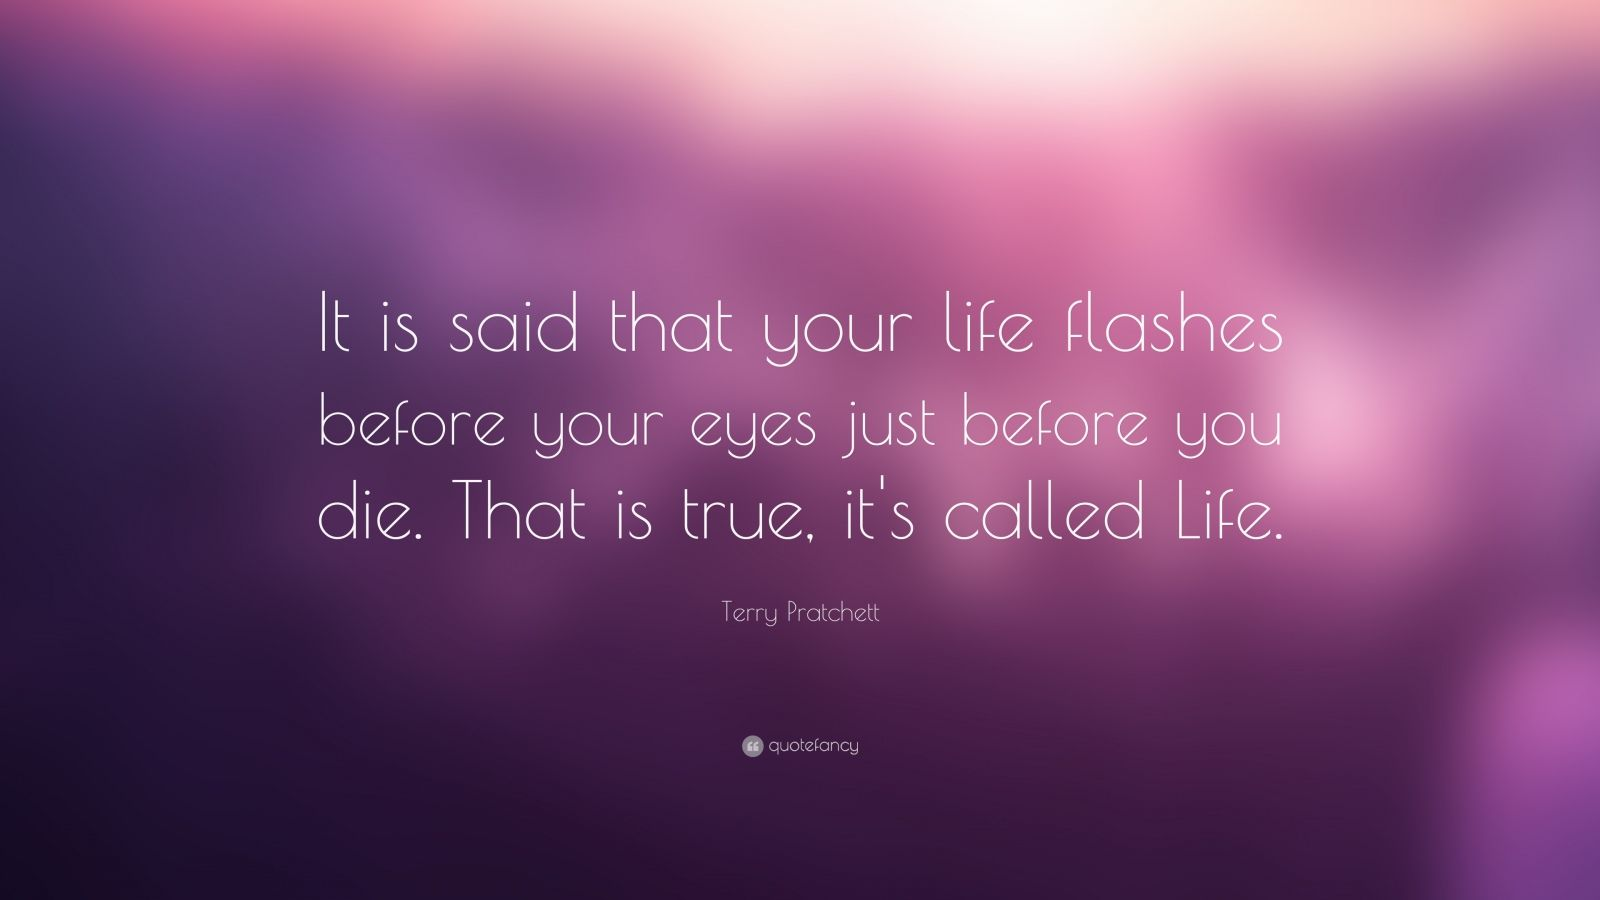 Life Is Quotes Life Quotes 100 Wallpapers  Quotefancy